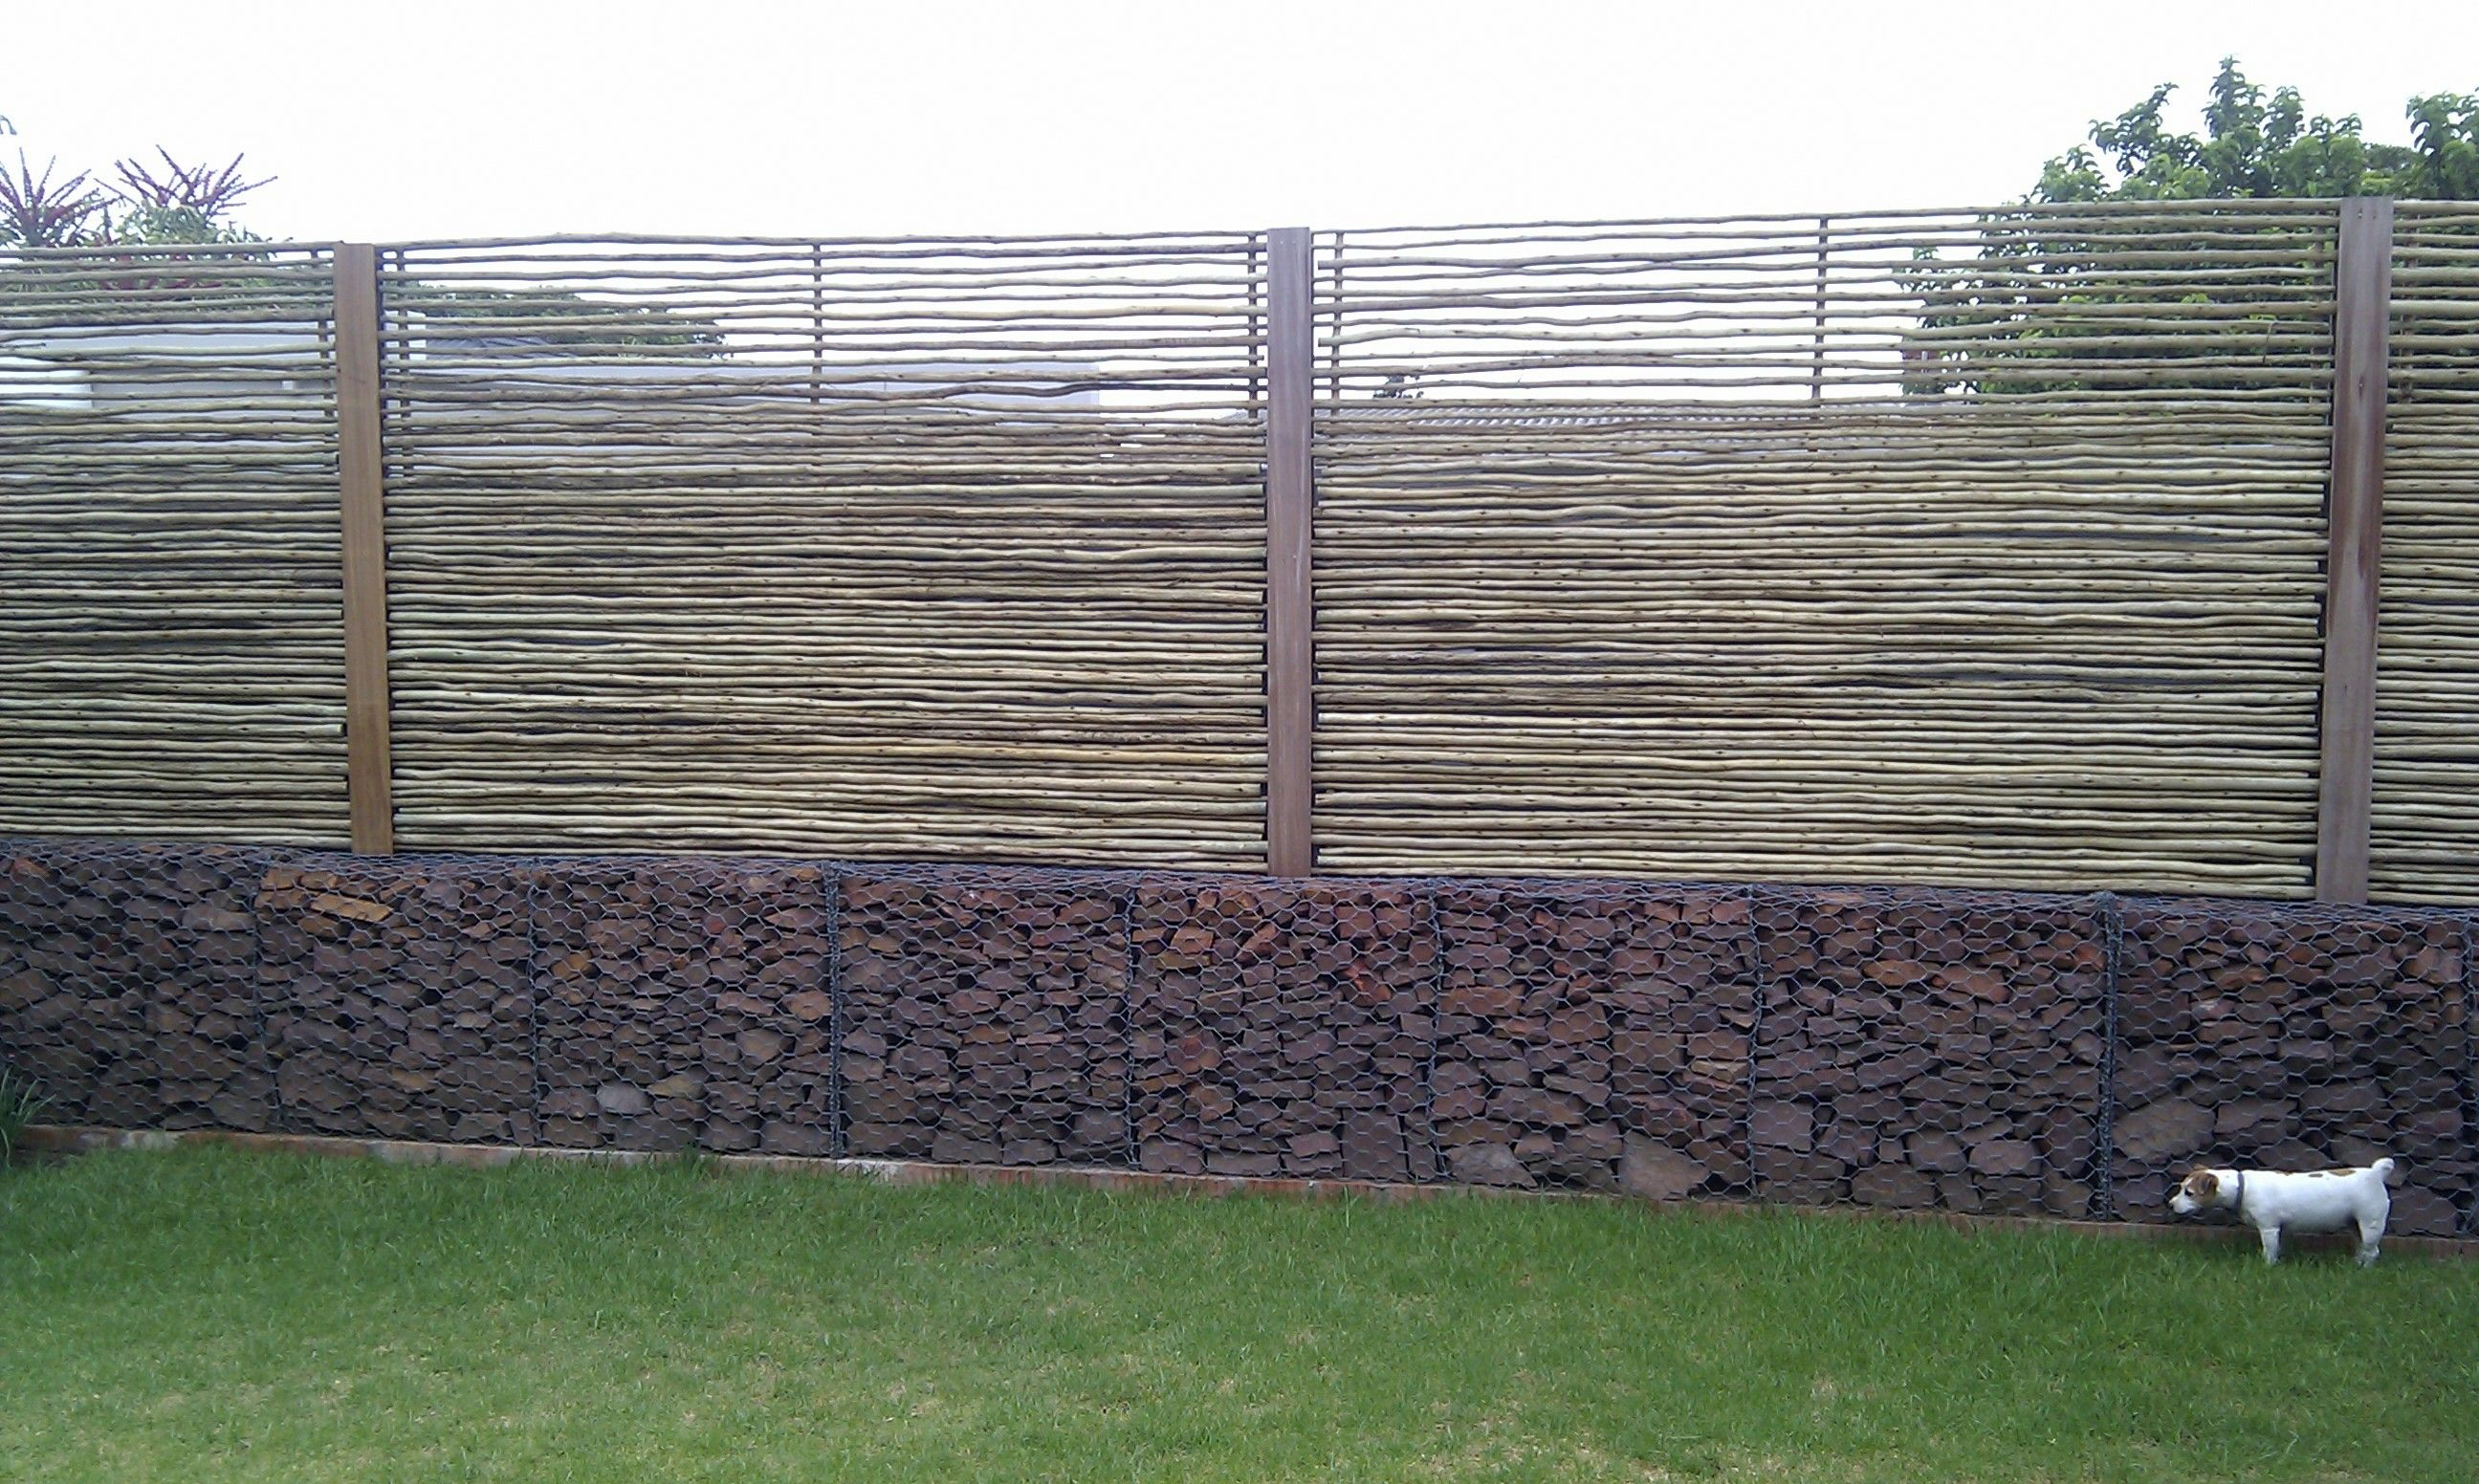 Landscaping Ideas To Hide Ugly Fence : Garden privacy gates concrete wall fence ideas